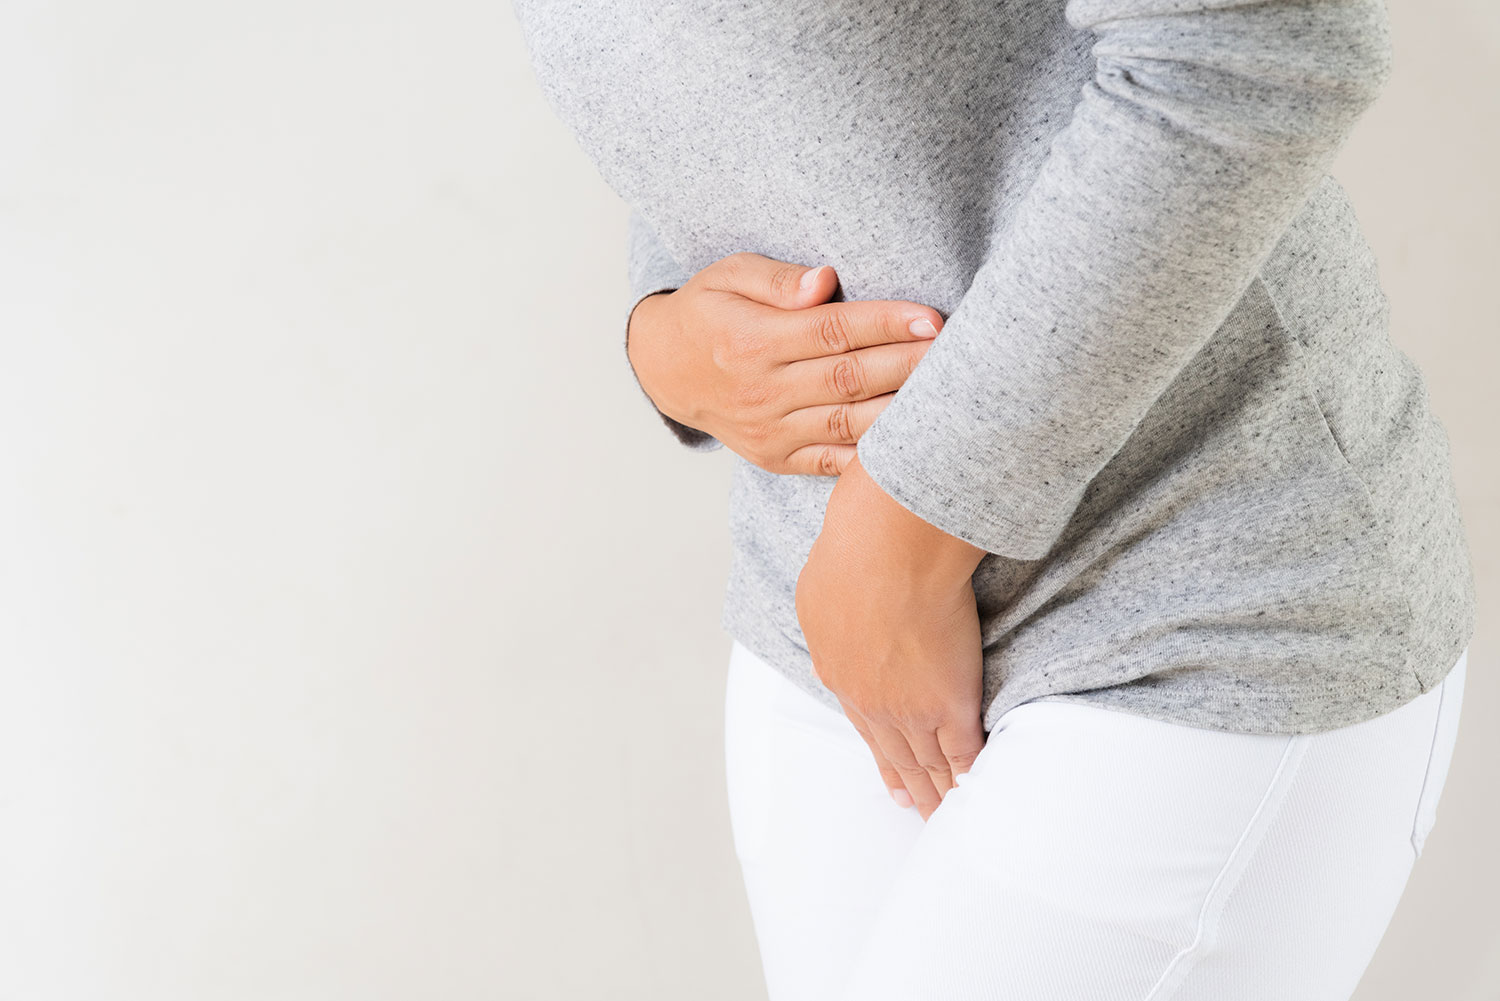 UTI, Bladder Infection, Kidney Infection - What Are The Differences?